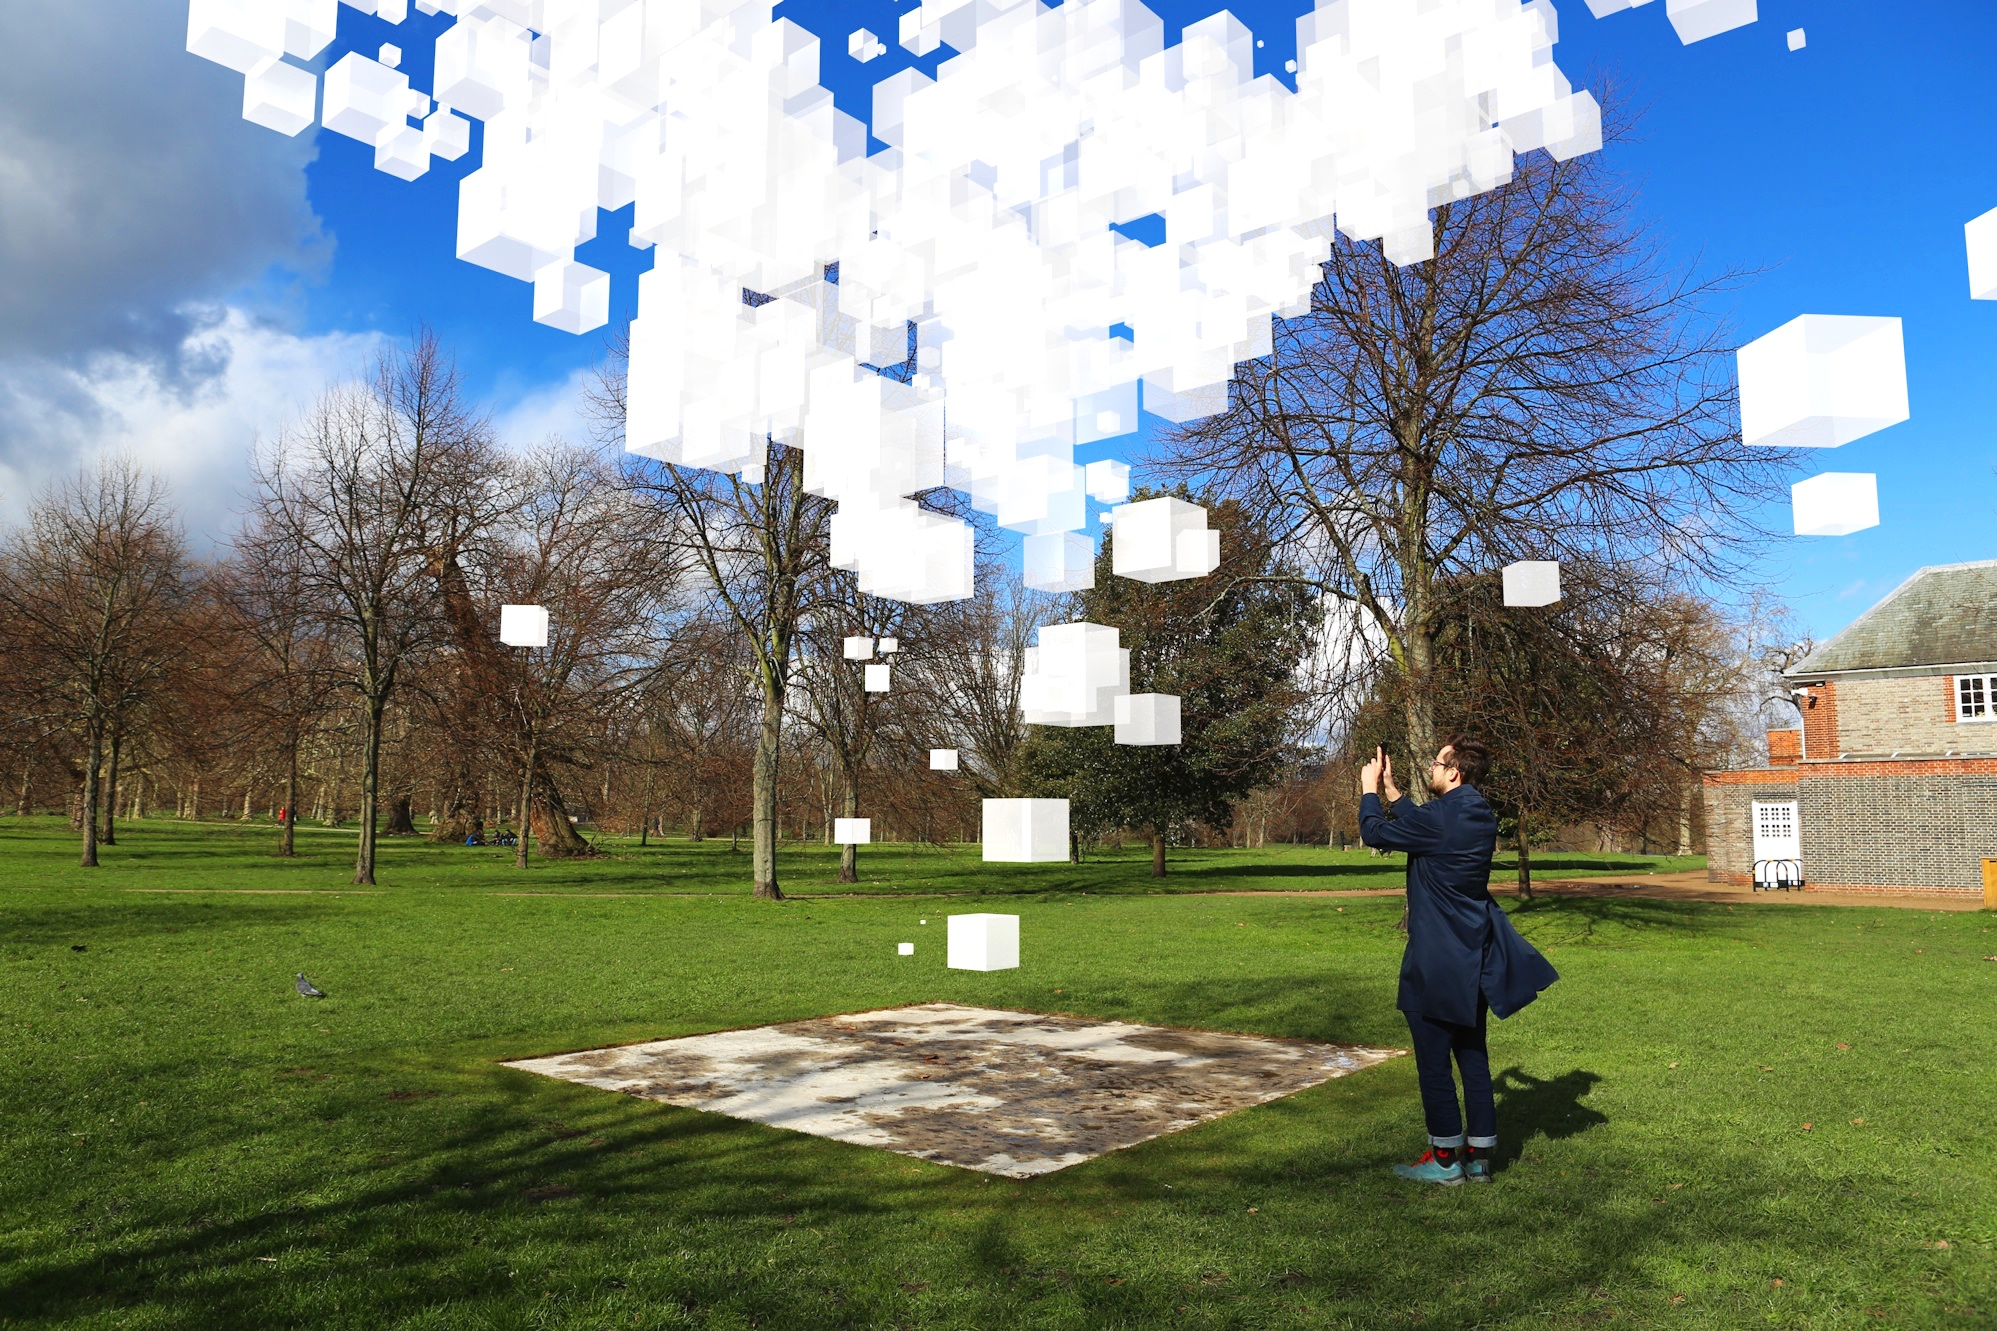 AUGMENTED REALITY SCULPTURE    Augmented Reality / Sculpture  This augmented reality sculpture made it to the final 5 of this year's prestigious Augmented Architecture opportunity by the Serpentine Gallery.    London Serpentine, UK, April 2019